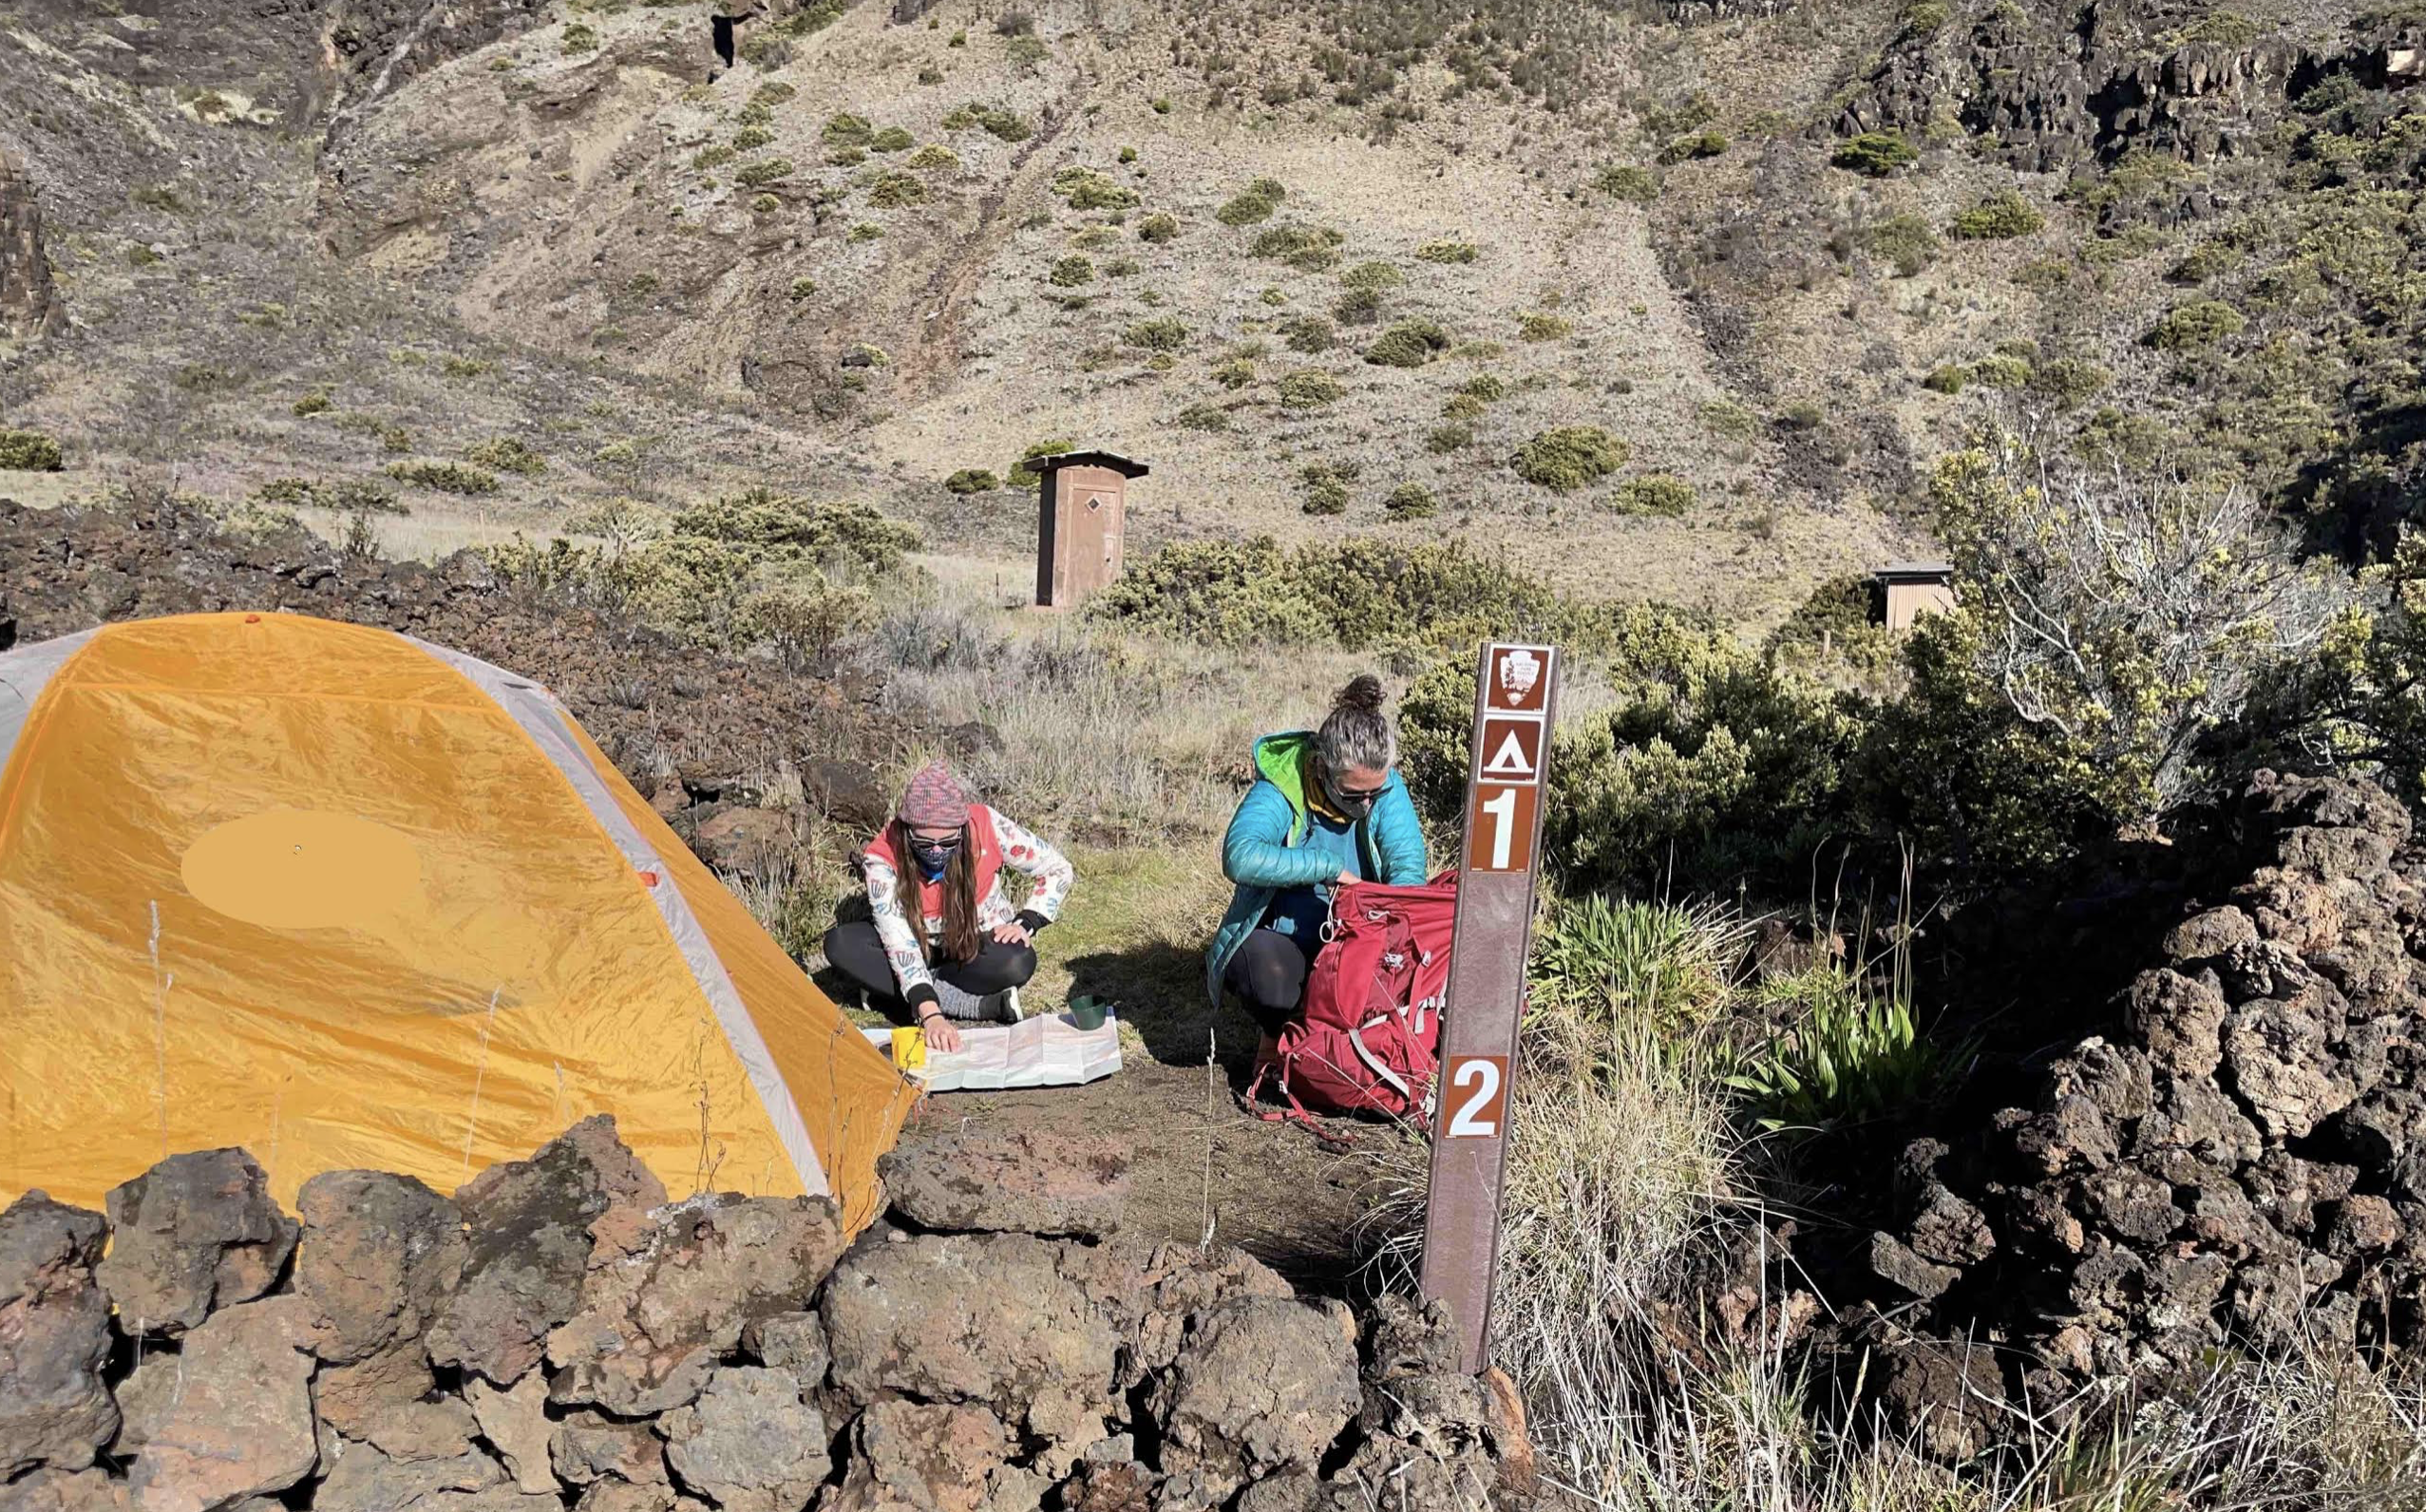 Reservation System Launched for Haleakalā Crater Overnight Wilderness Camping